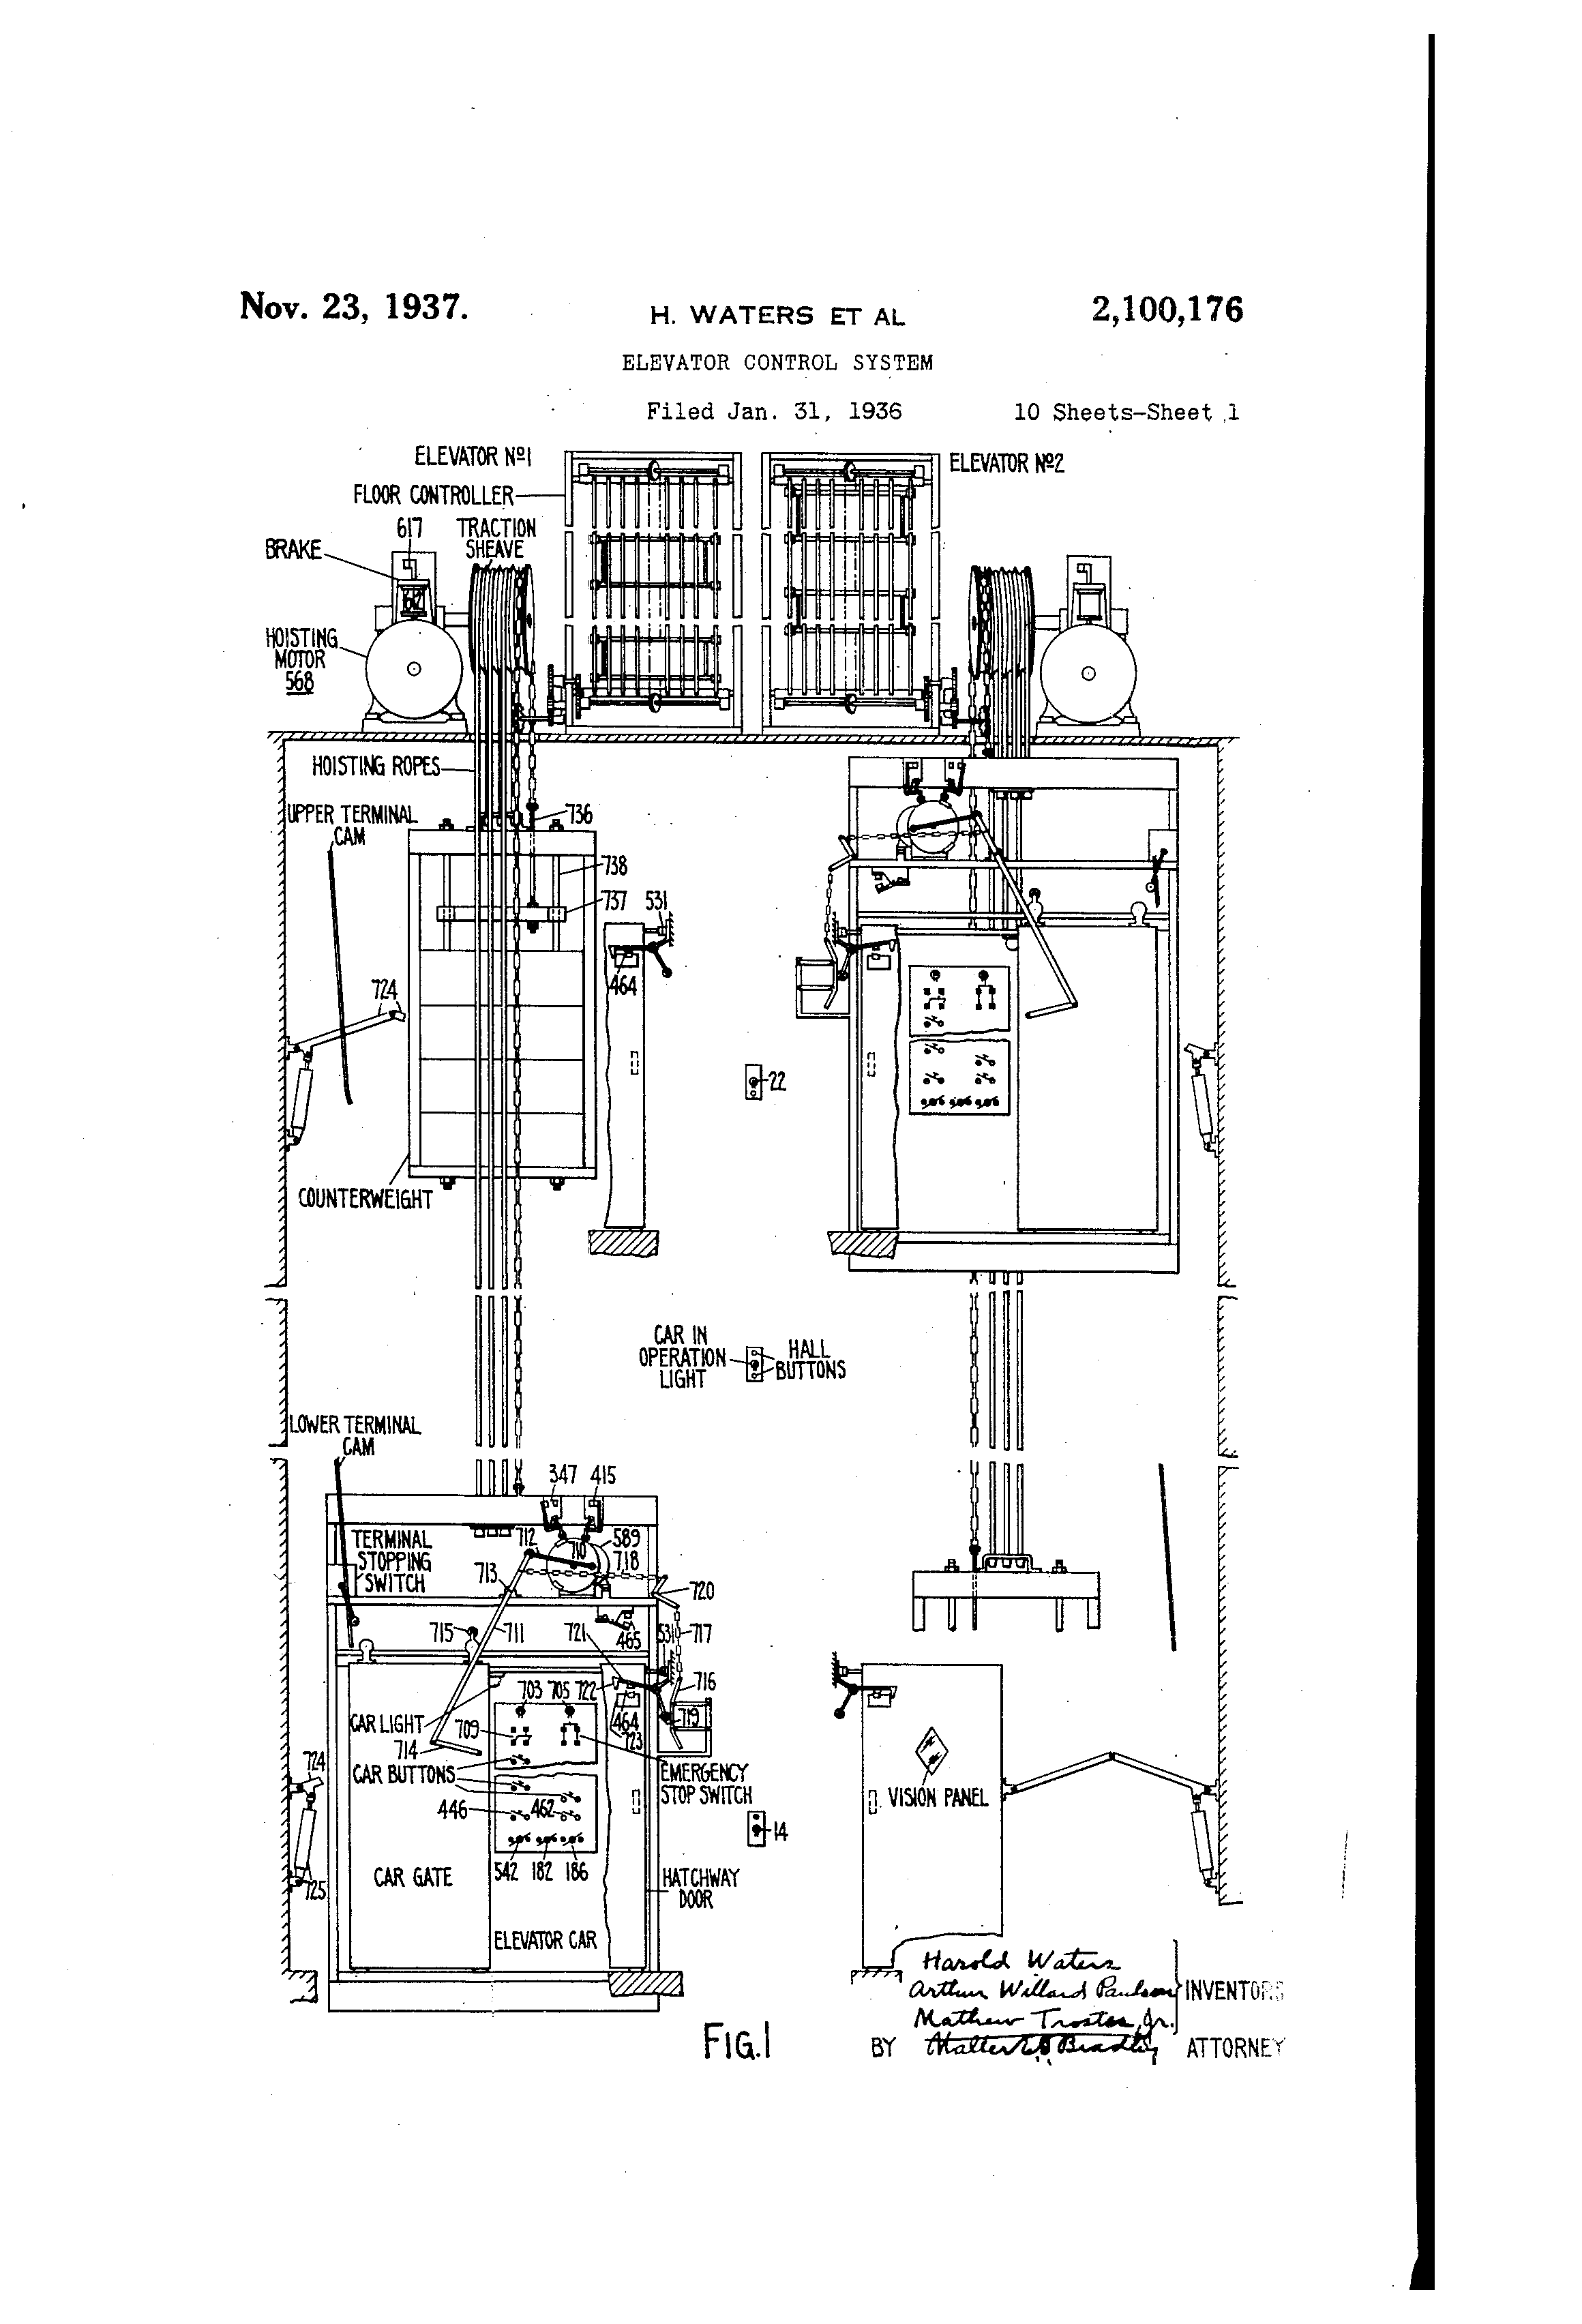 us elevator company wiring schematic elevator camera wiring schematic patent us2100176 - elevator control system - google patents #2